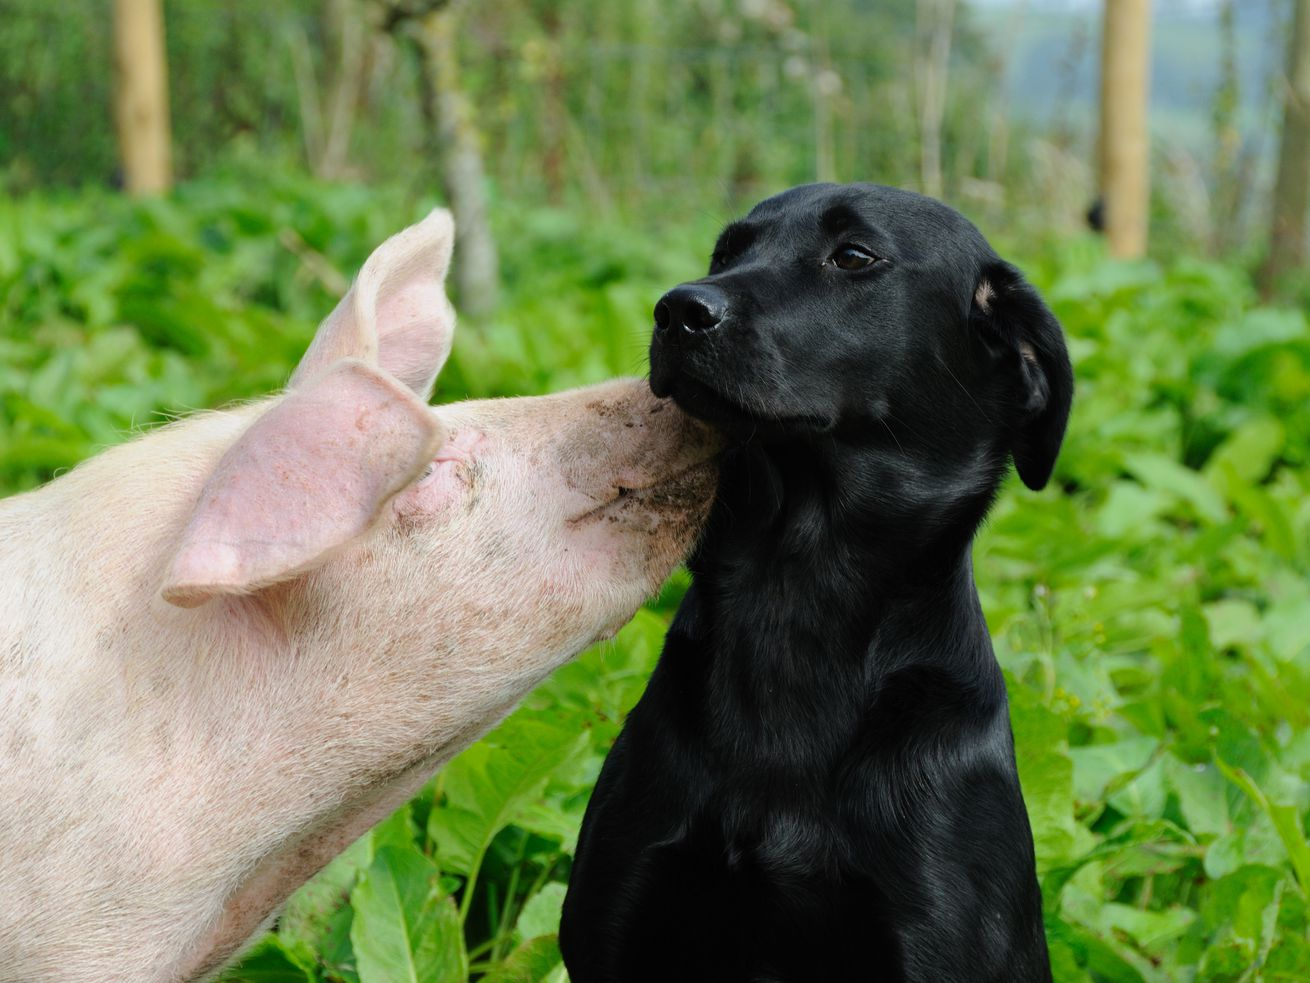 A pig kissing a black Labrador outdoors.